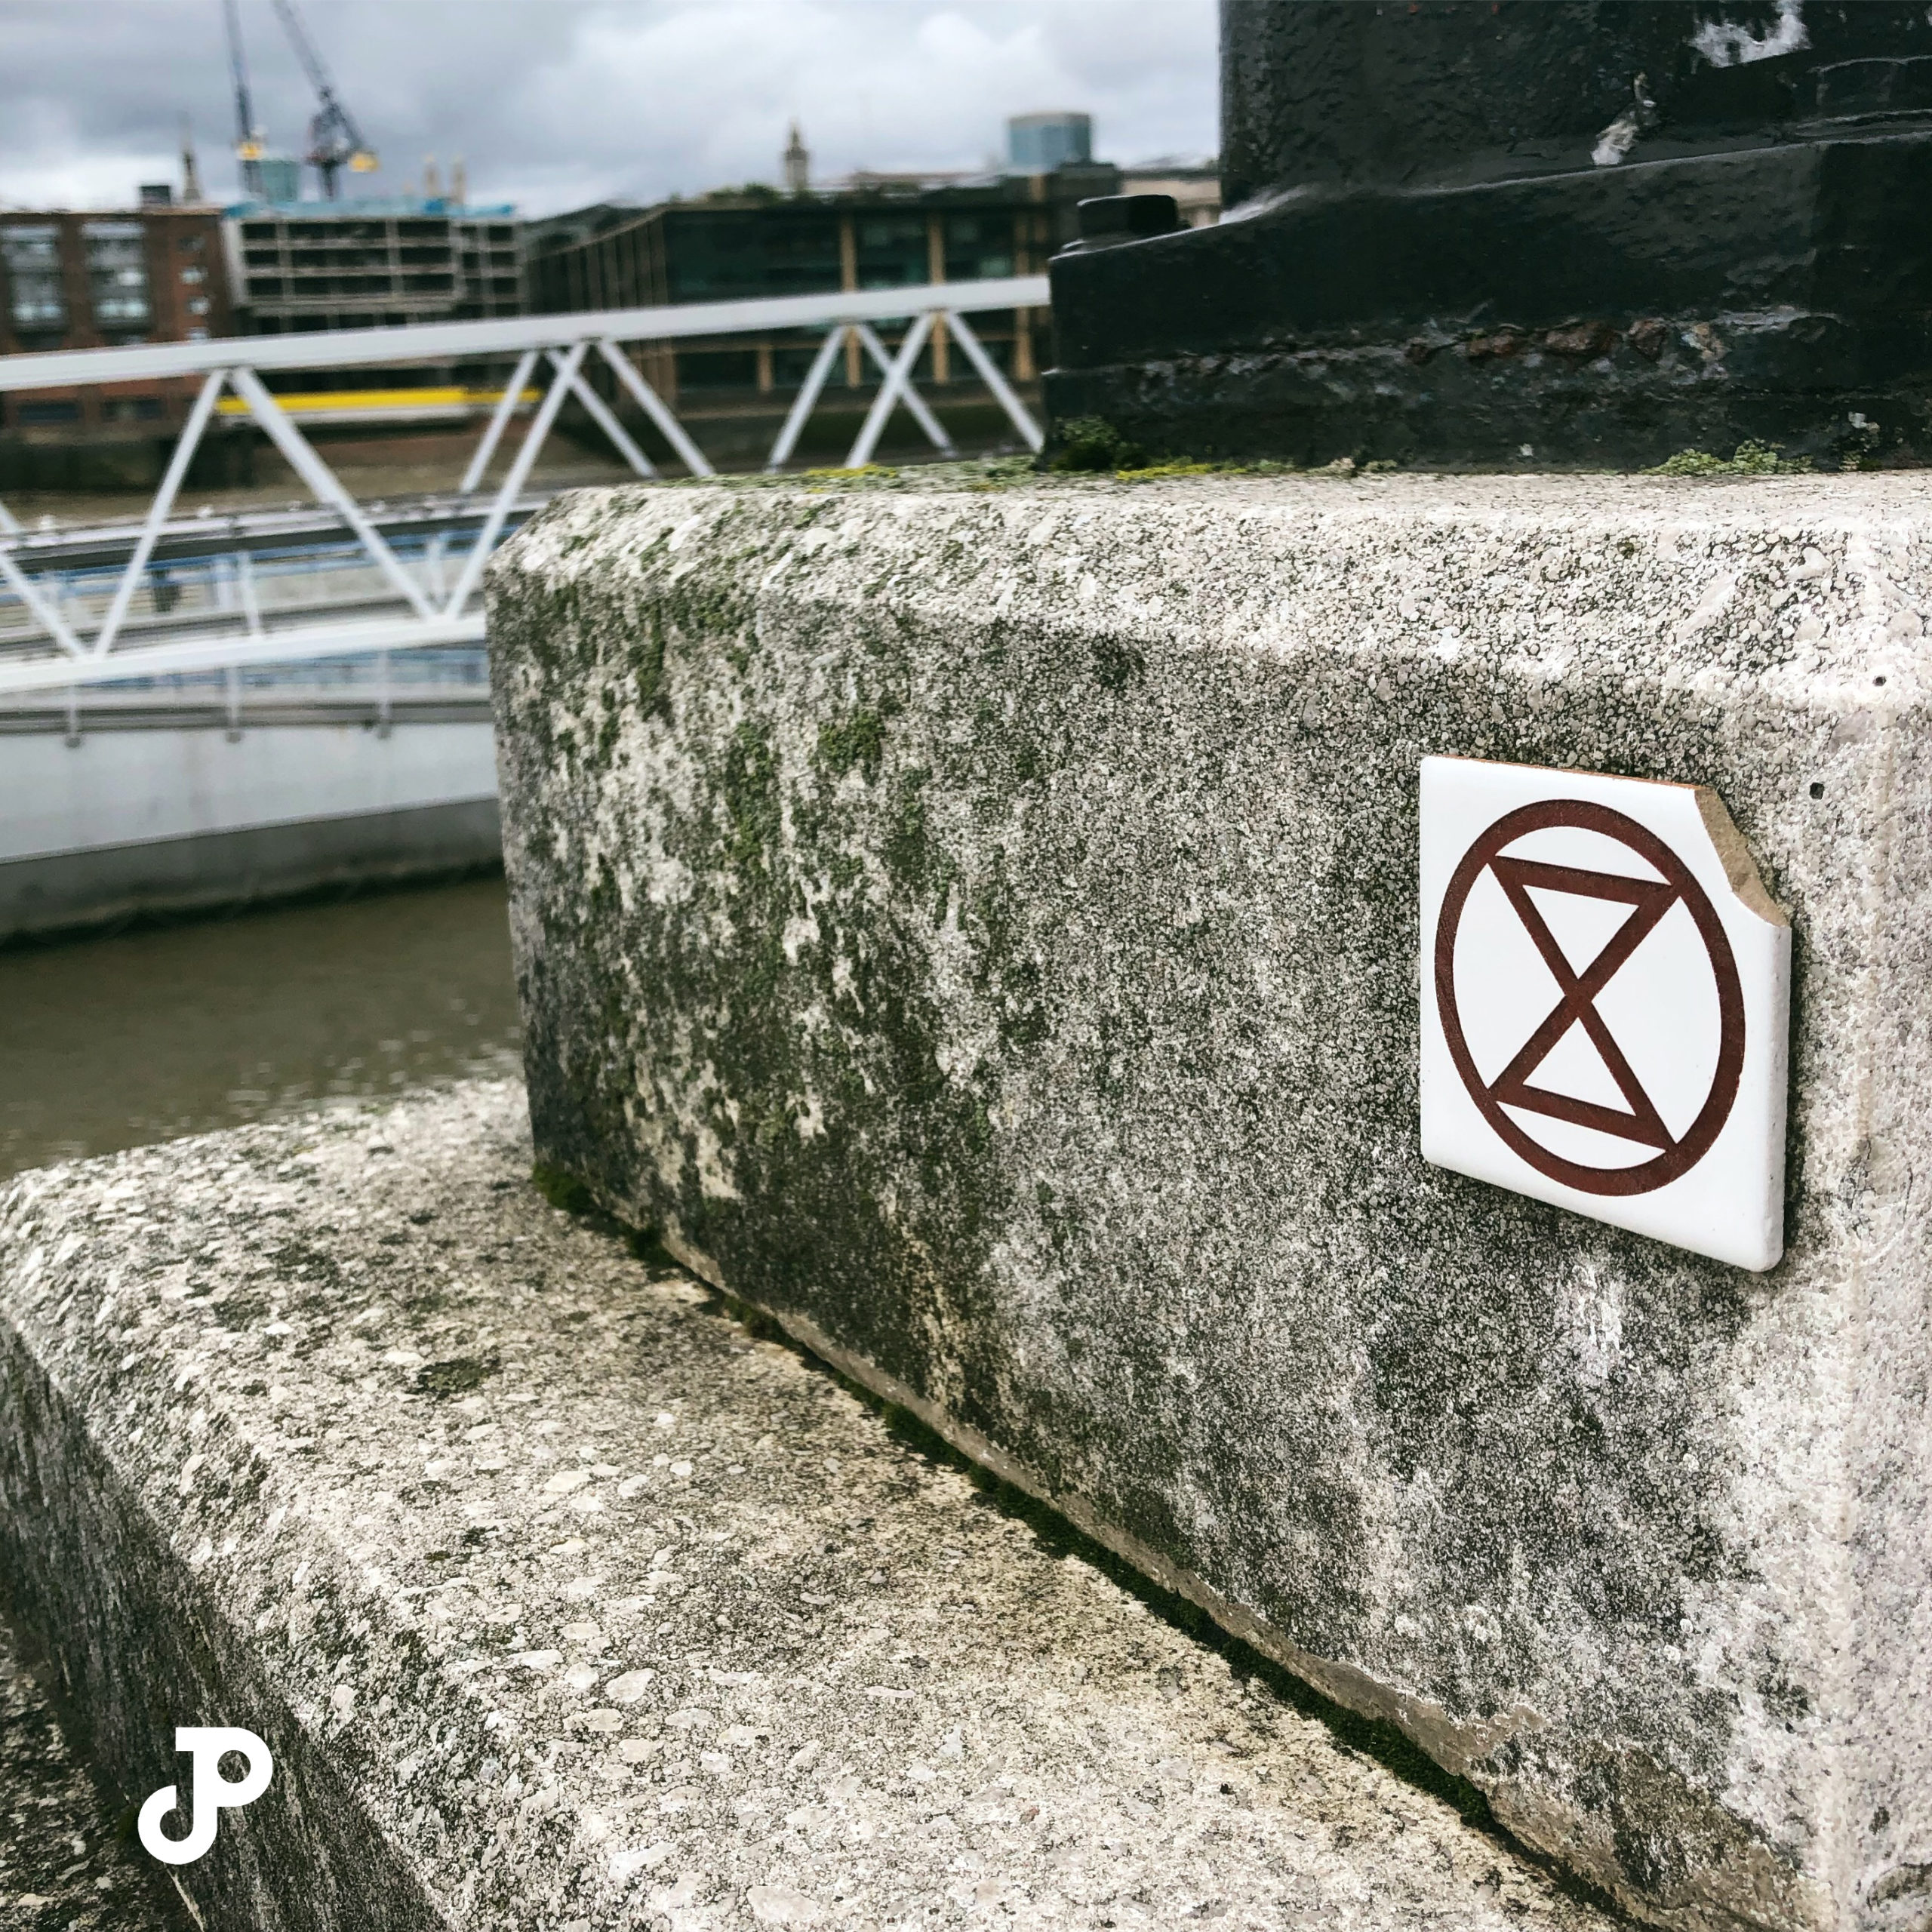 a small tile on a concrete slab, showing the Extinction Rebellion logo